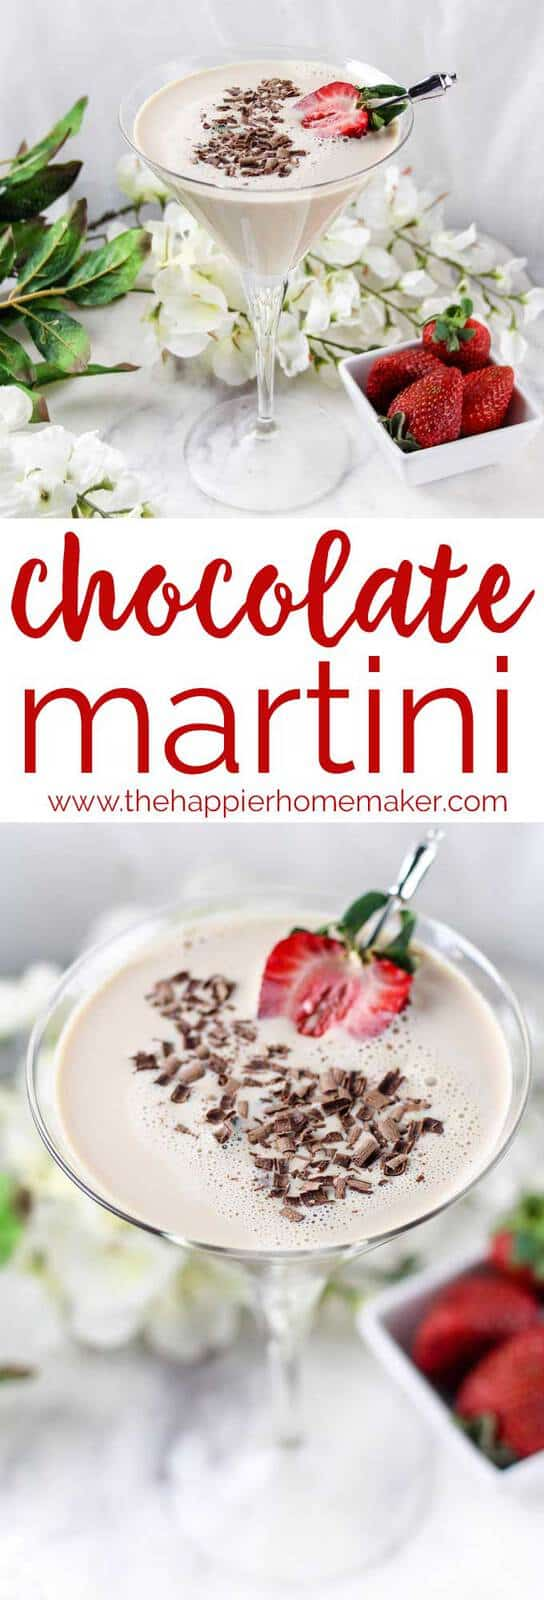 Best Ever Chocolate Martini (with Secret Ingredient!)